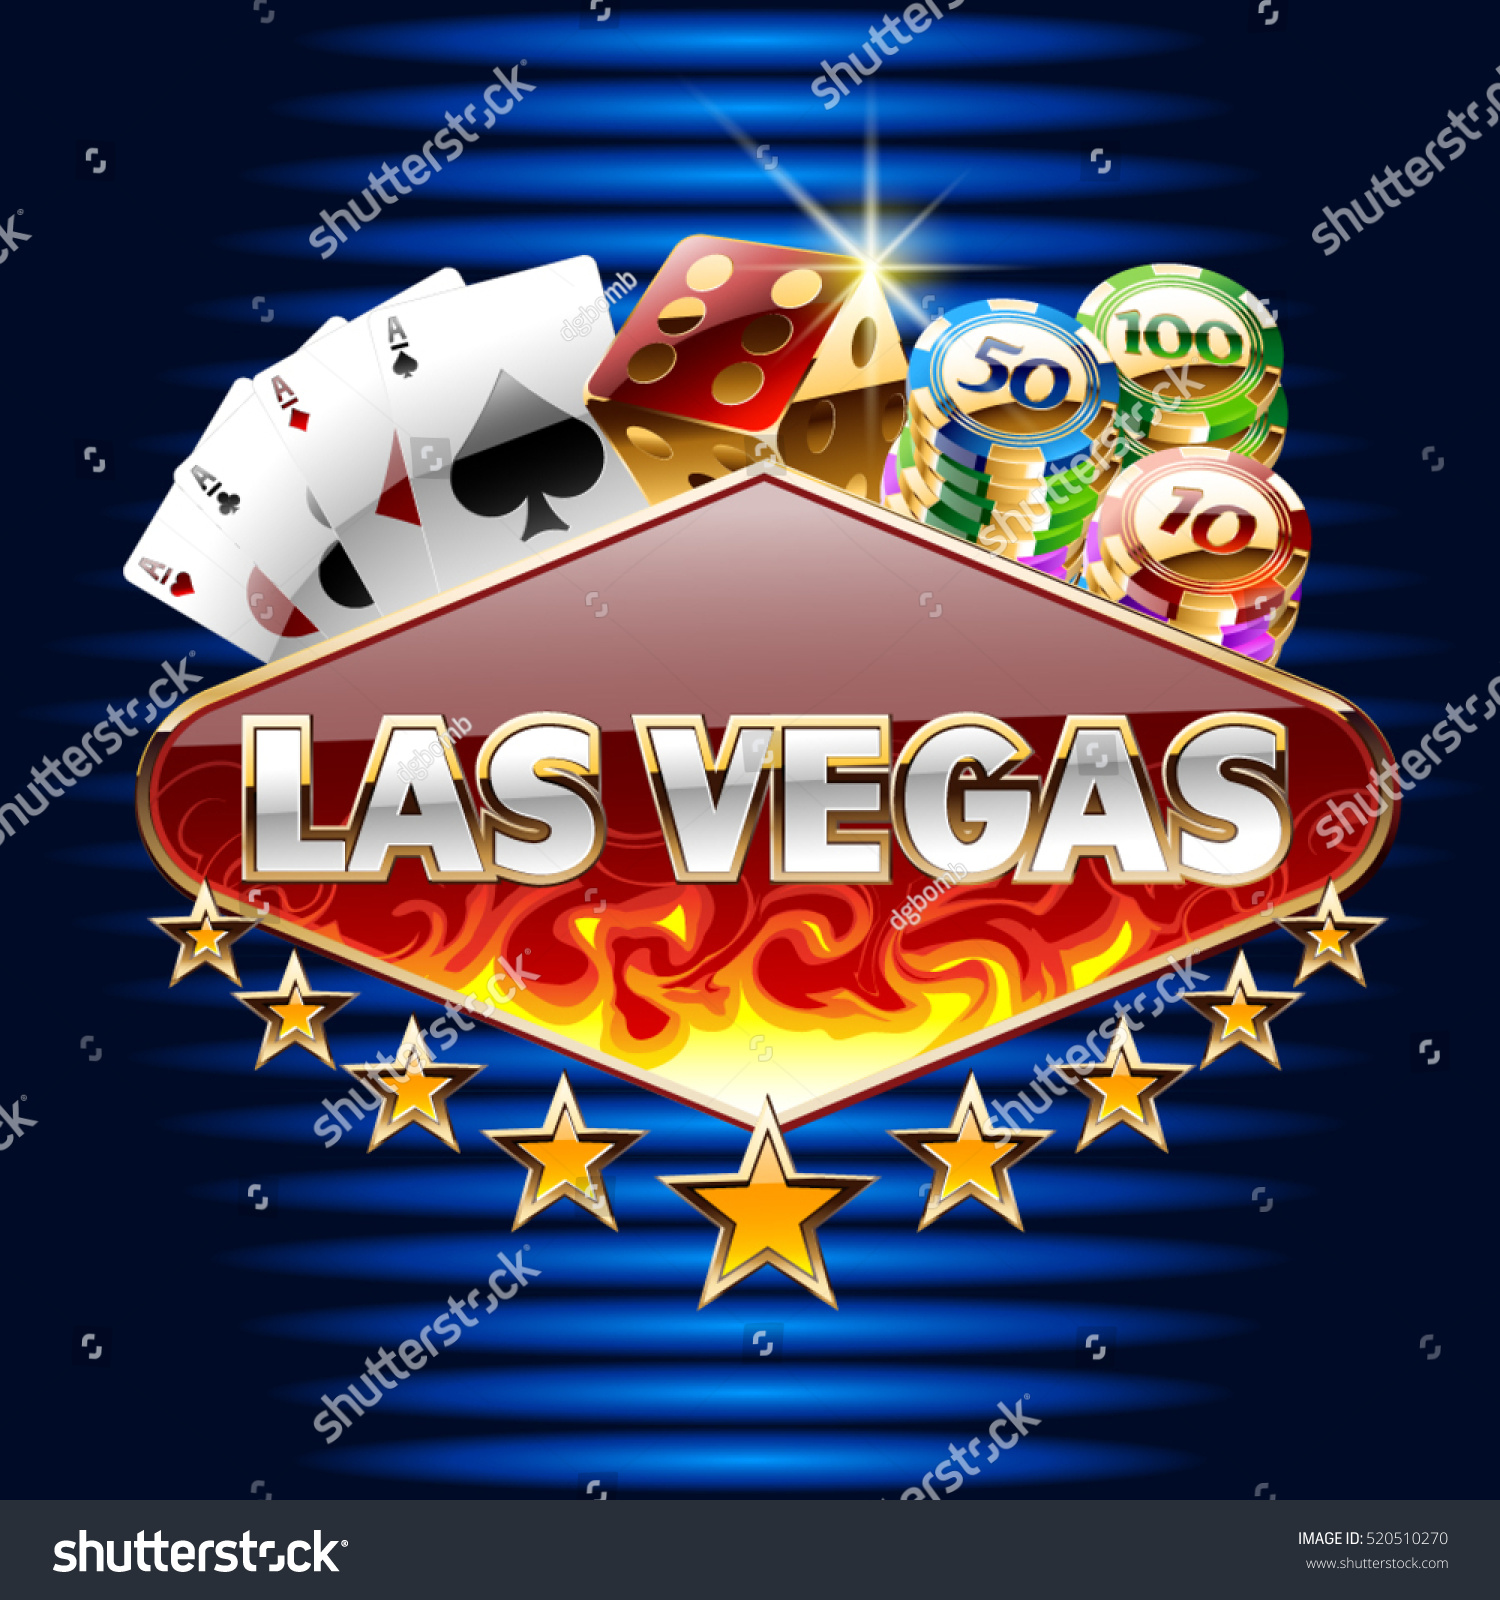 Vector Casino Card Text Las Vegas Vector de stock (libre de regalías ...